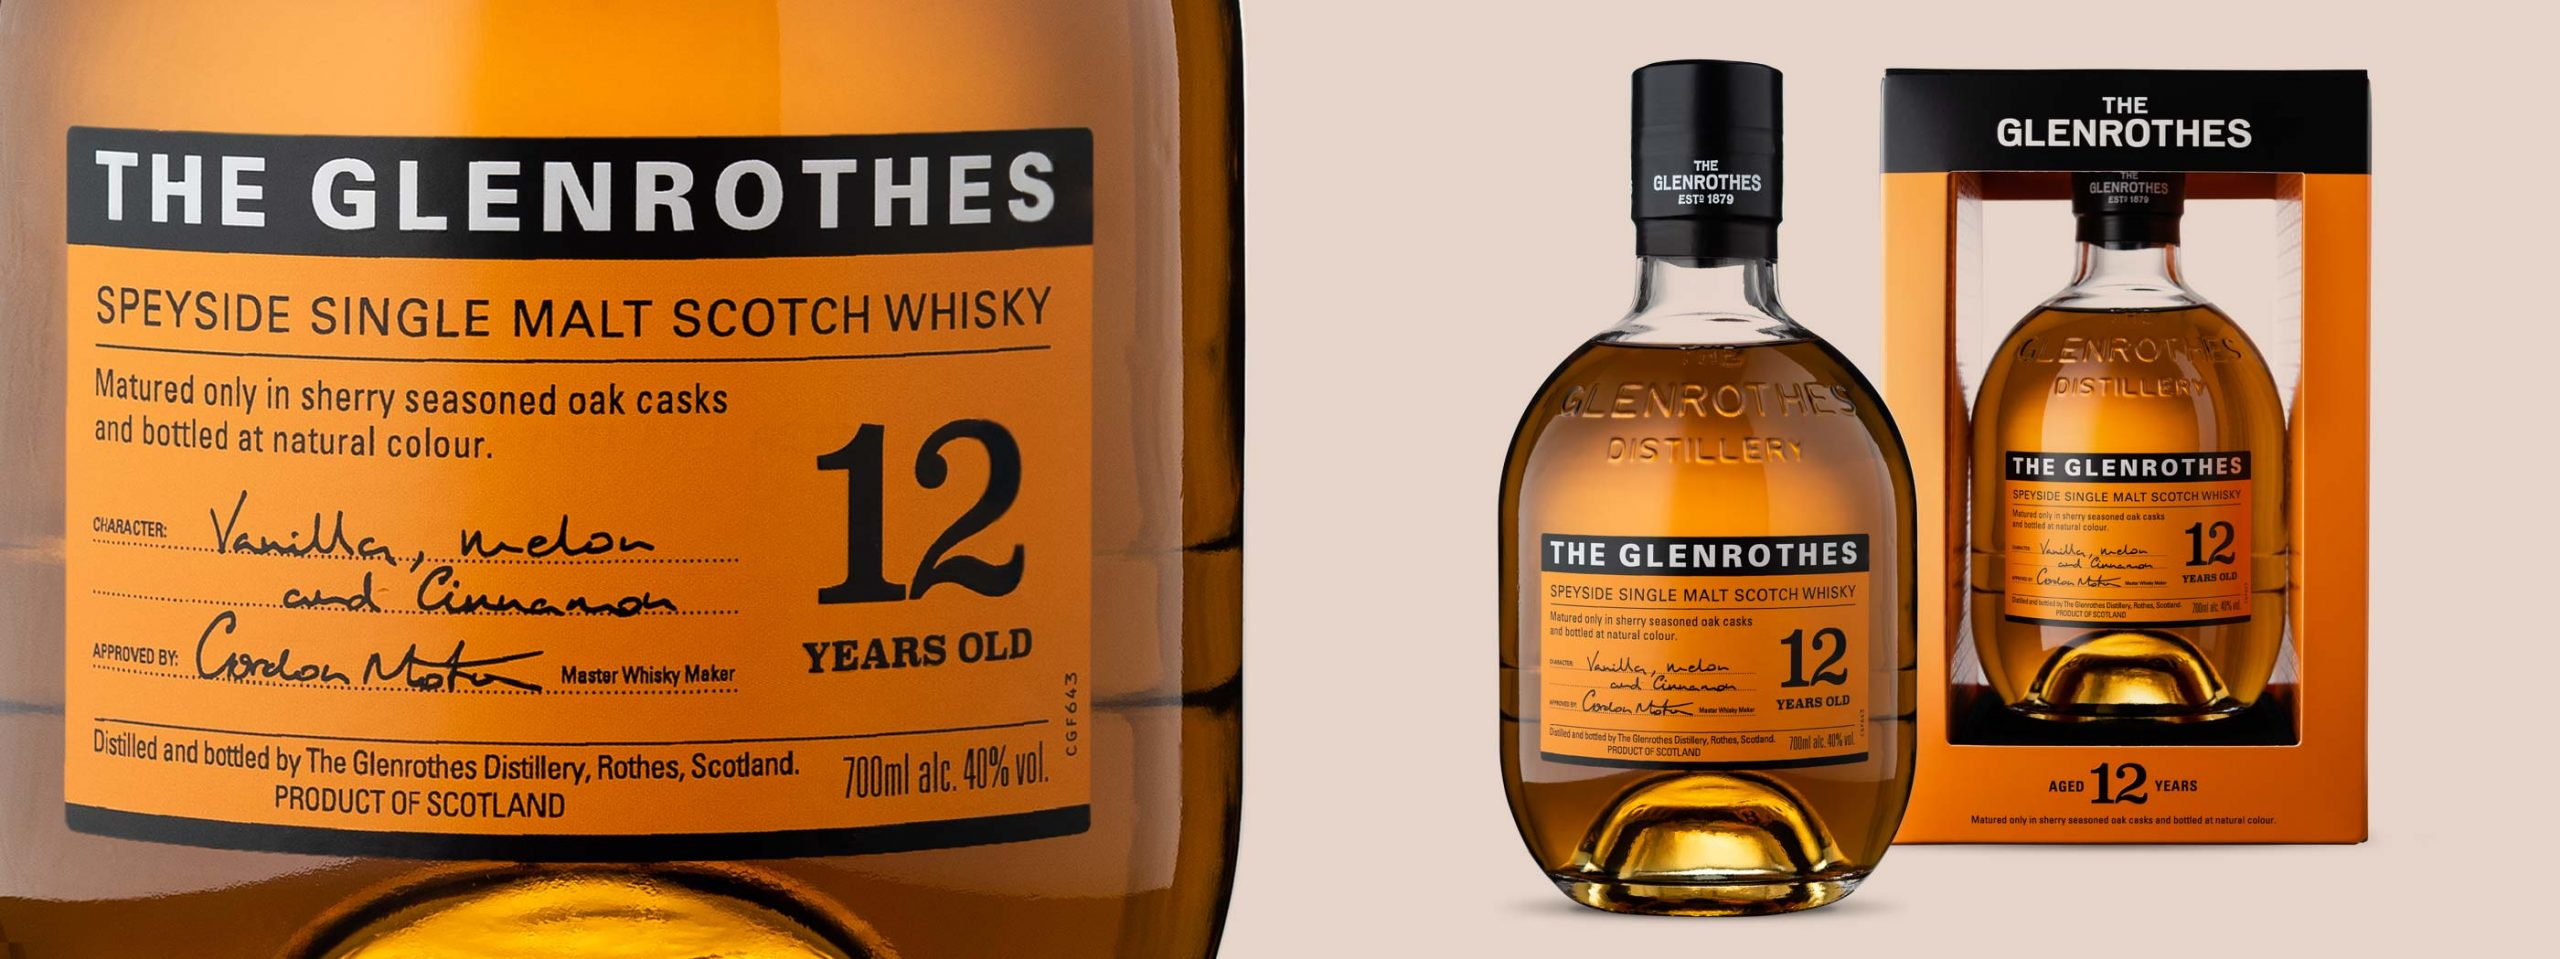 Glenrothes_Packaging_2